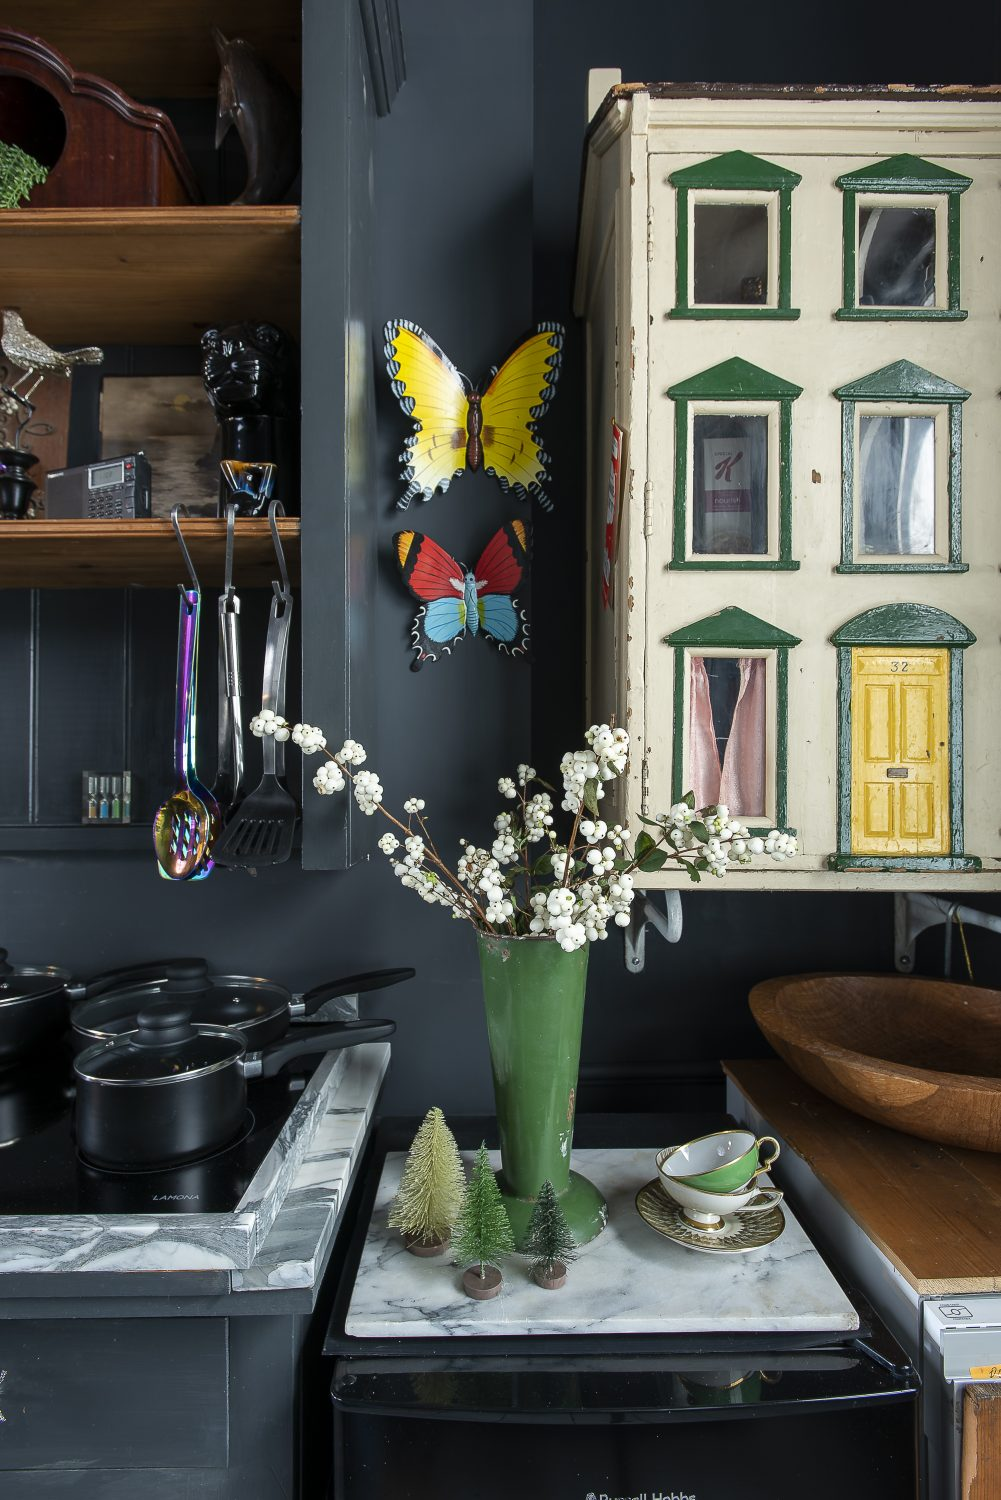 The dolls house, mounted on the wall, all the wallpaper still in place inside, makes a perfect storage space for kitchen cupboard staples